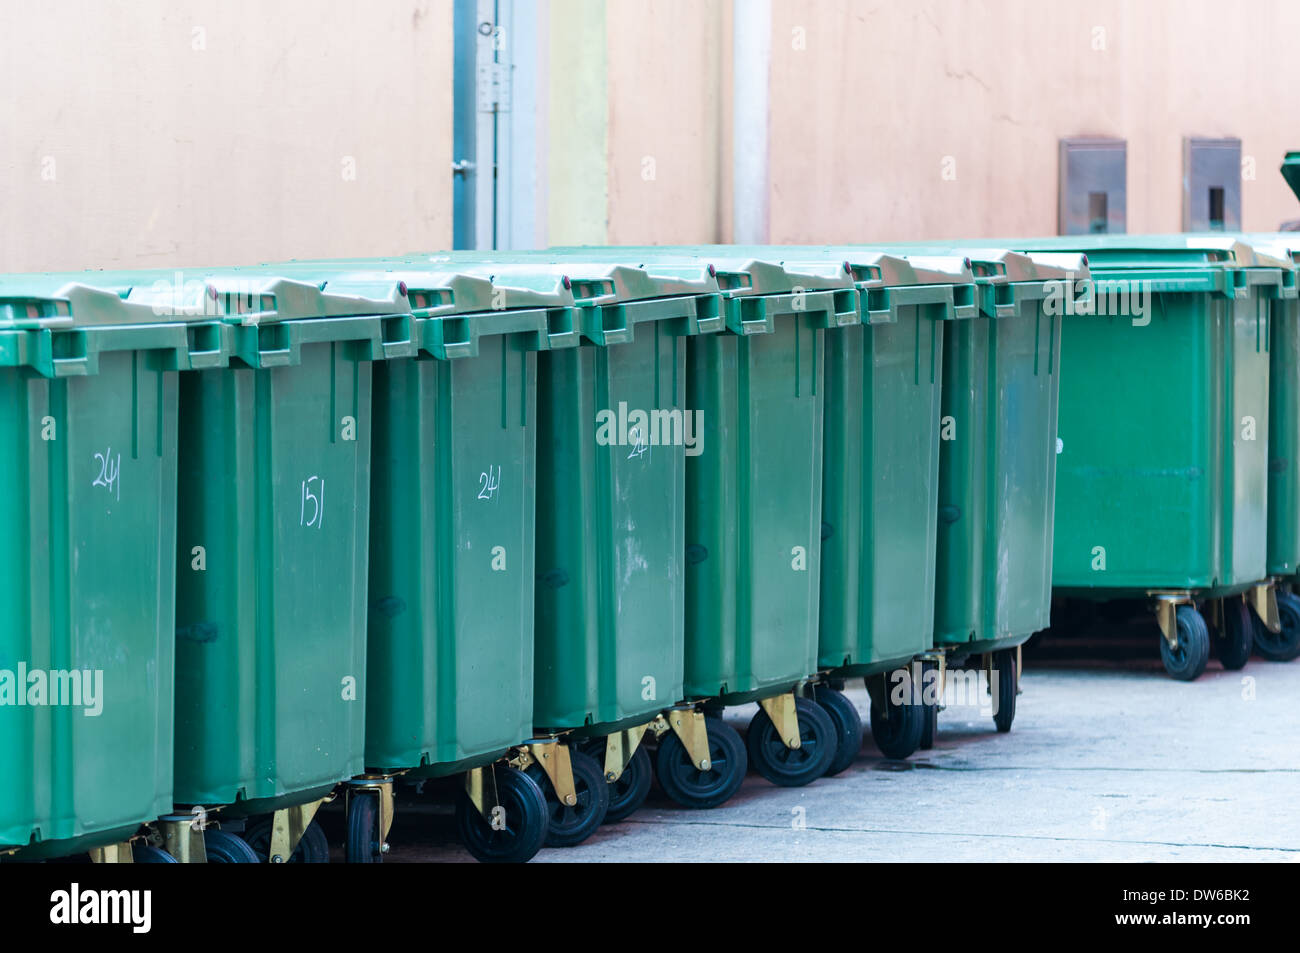 A row of garbage bins in an alleyway in Singapore. - Stock Image